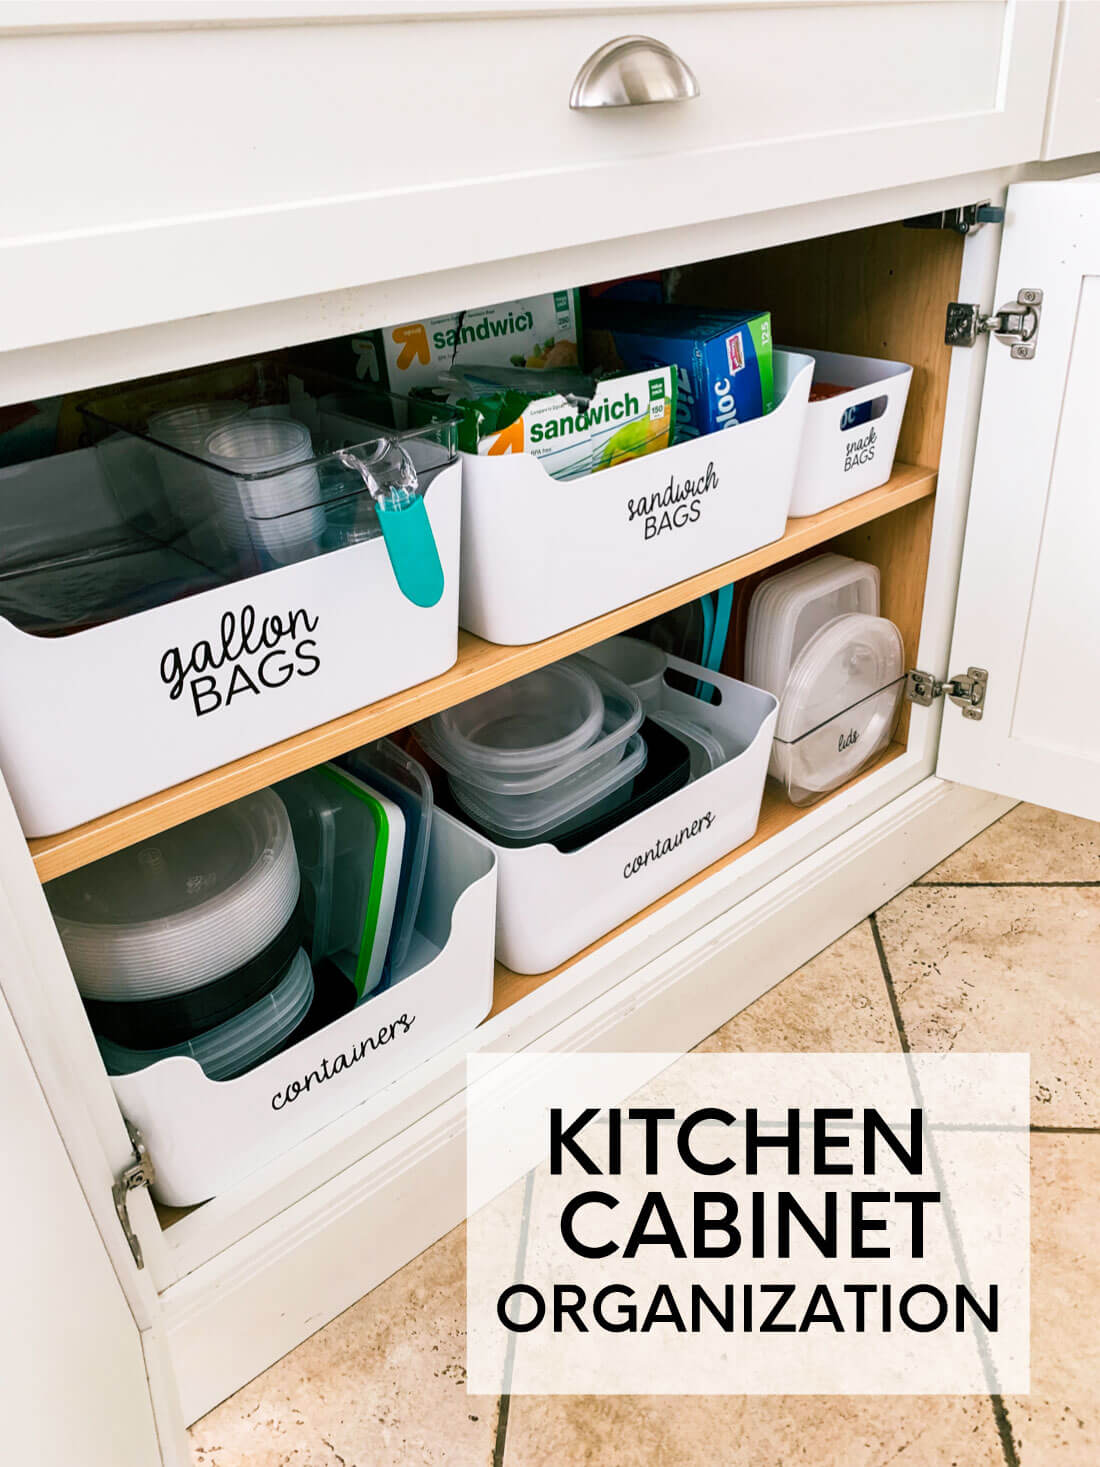 How to Organize Kitchen Cabinets - Thirty Handmade Days